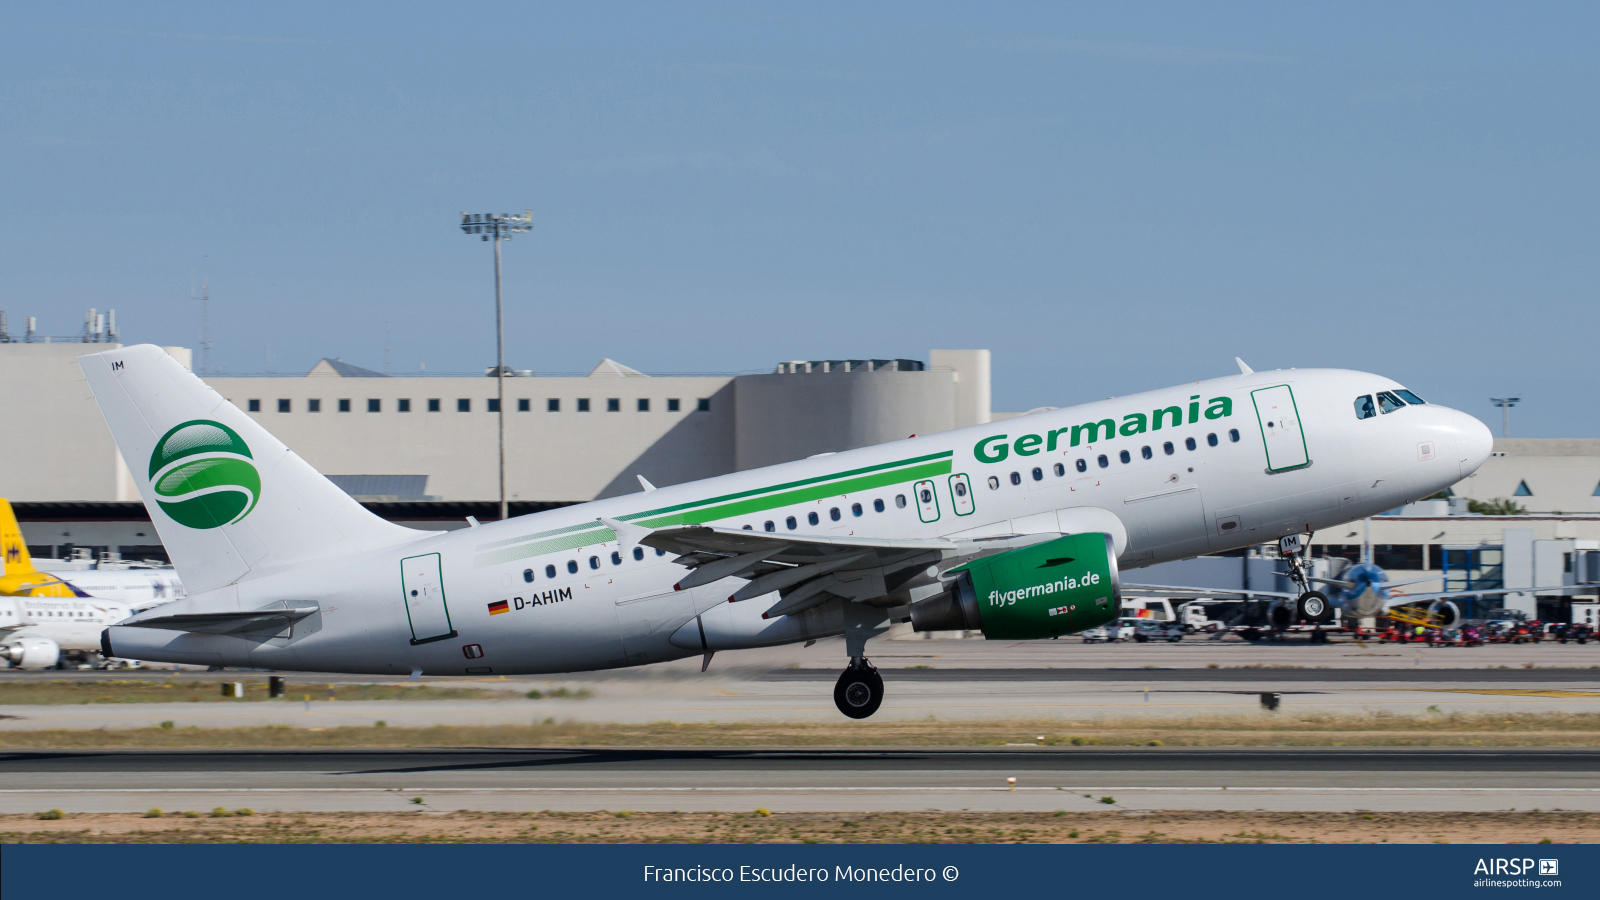 Germania  Airbus A319  D-AHIM